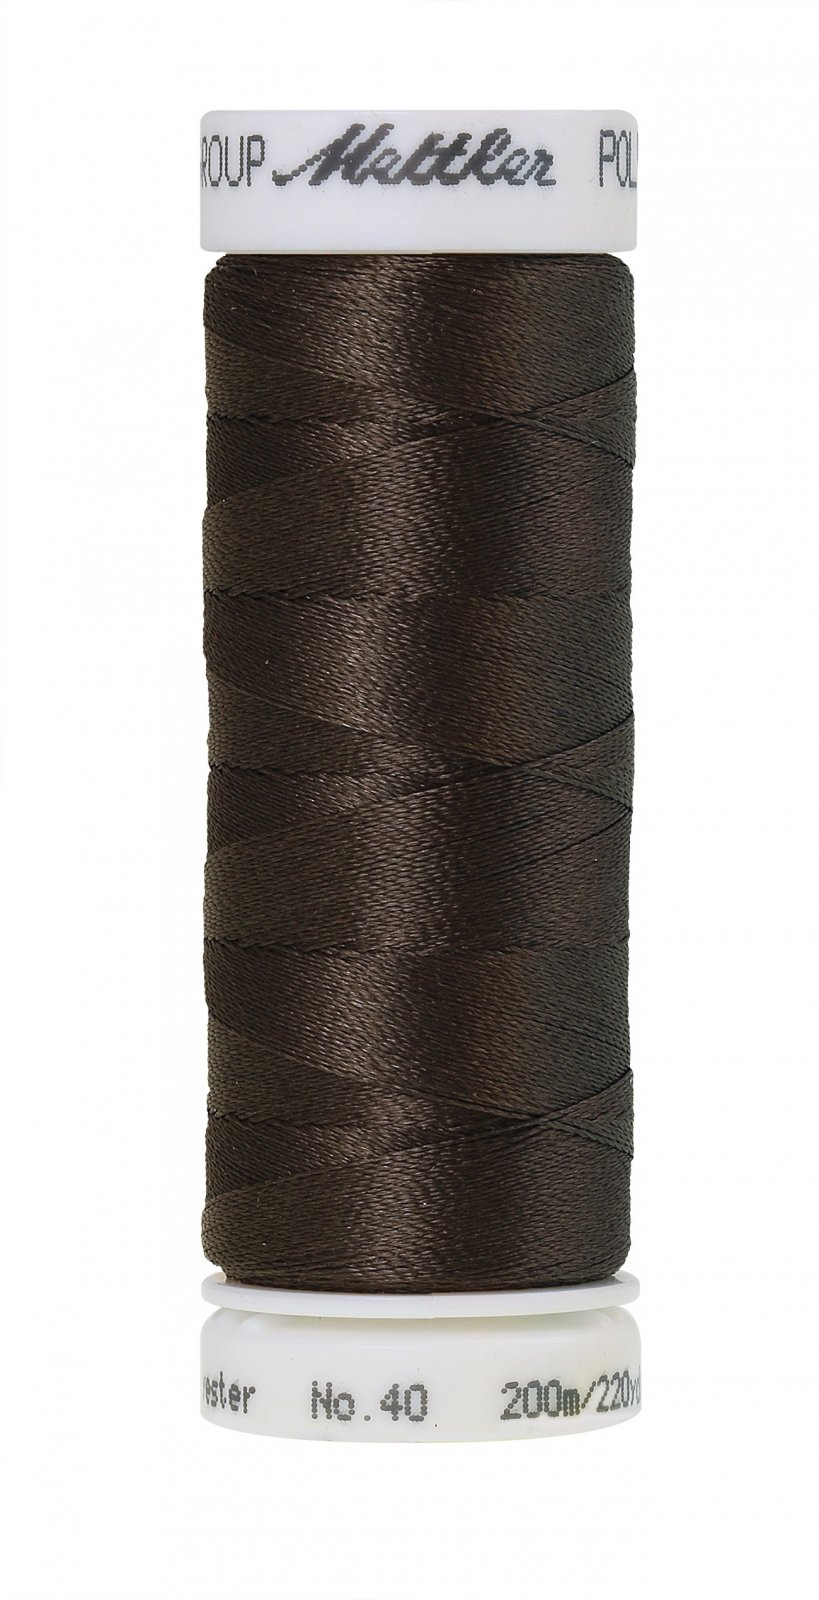 Poly Sheen Polyester Embroidery Thread 40wt 200M/220yd Dark Charcoal